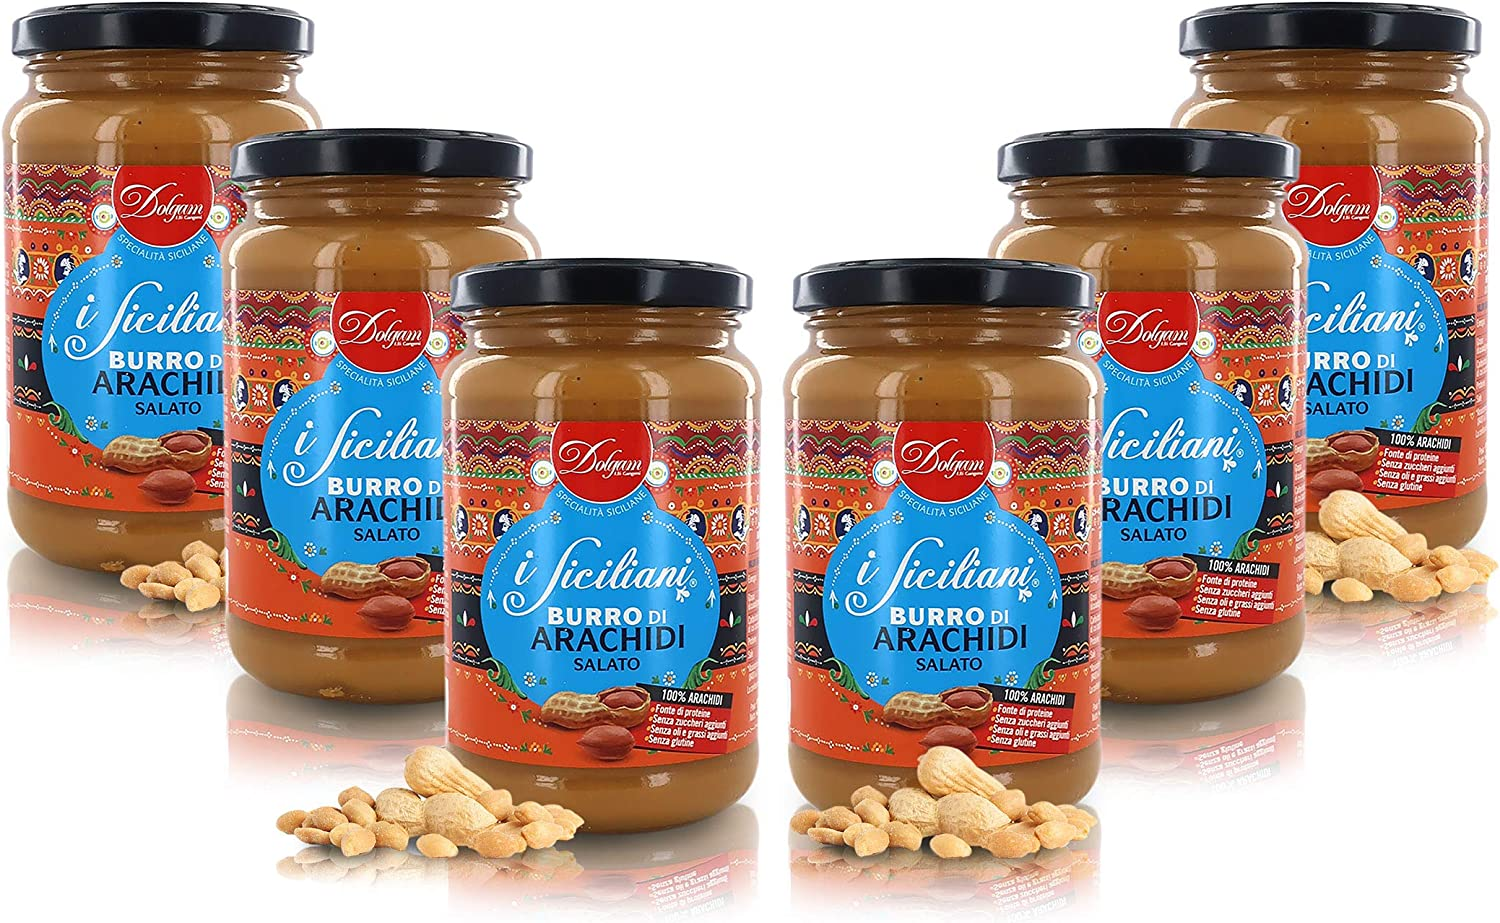 Dolgam Salted Peanut Butter Made in San Jose Mall Italy Eac Oz Jars Fresno Mall 6 13.22